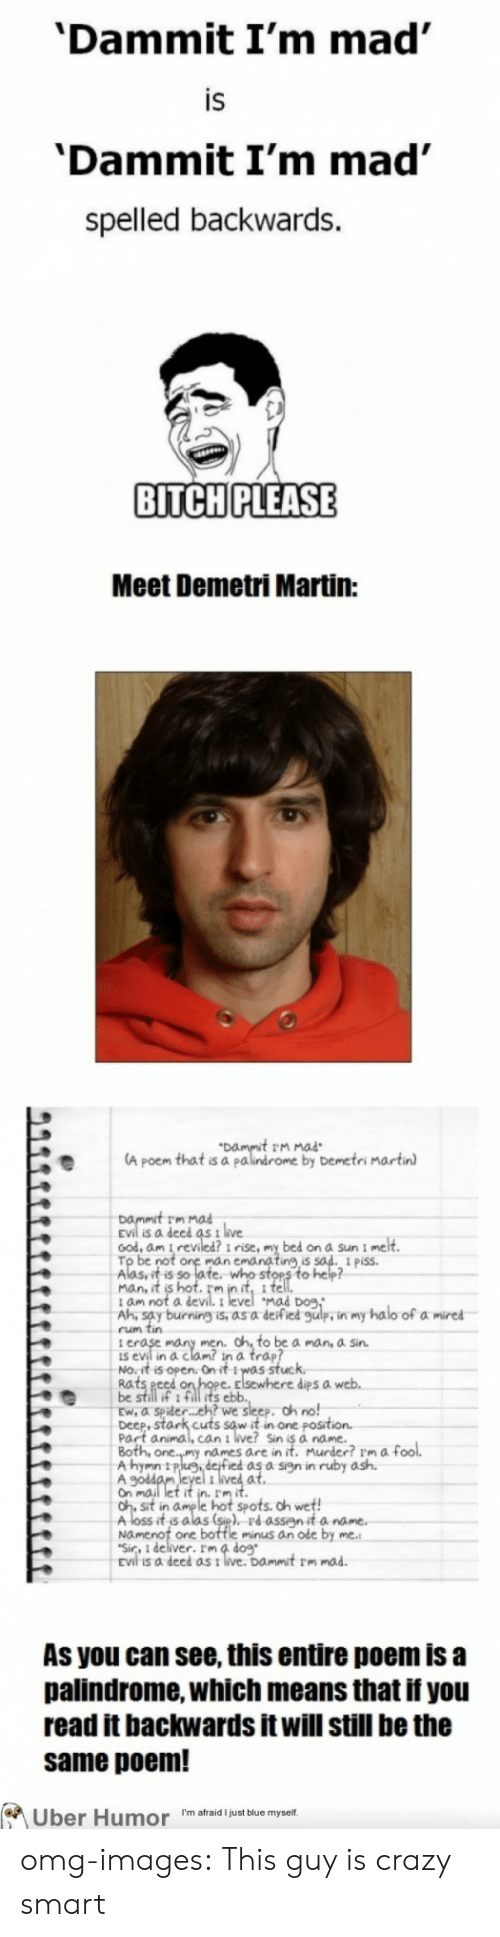 Dammit Im Mad: 'Dammit I'm mad  IS  'Dammit I'm mad'  spelled backwards.  BITCH PLEASE  Meet Demetri Martin:  t rm mad  A poem that is a palindrome by Demetri martin  Dammit rm  is a deed as t live  ood, am i reviled? i rise, my bed on a Sun i me  man c  ing,is  Aasuit s of fe nito sten o hep  Mad Do9  t am not a  Ah, say burning is, as a deified gulp, in my halo of a mired  rum tin  i e  is evil in a clam? in a trap?  No.it is open. On it 1was stuc  Rats eed  be still if 1 fill its eblb  Ew, a spider.. eh? we sleep. oh no!  Deep, stark cuts sow it in one posit  Part animal, can i live? Sin is à name.  dips a  names are in it. Murder? rm a fool.  A hymn 11P  ed as a sign in ruby ash.  Gh st in aume l hot spots. oh wet!  Aloss it's alas (st), Pd assyit a na  Namenot one bottle minus an ode by  Sir, 1 deliver. Im 4 dog  As you can see, this entire poem is a  palindrome, which means that if you  read it backwards it will still be the  same poem!  Uber Humor I'm afraid just blue myself omg-images:  This guy is crazy smart